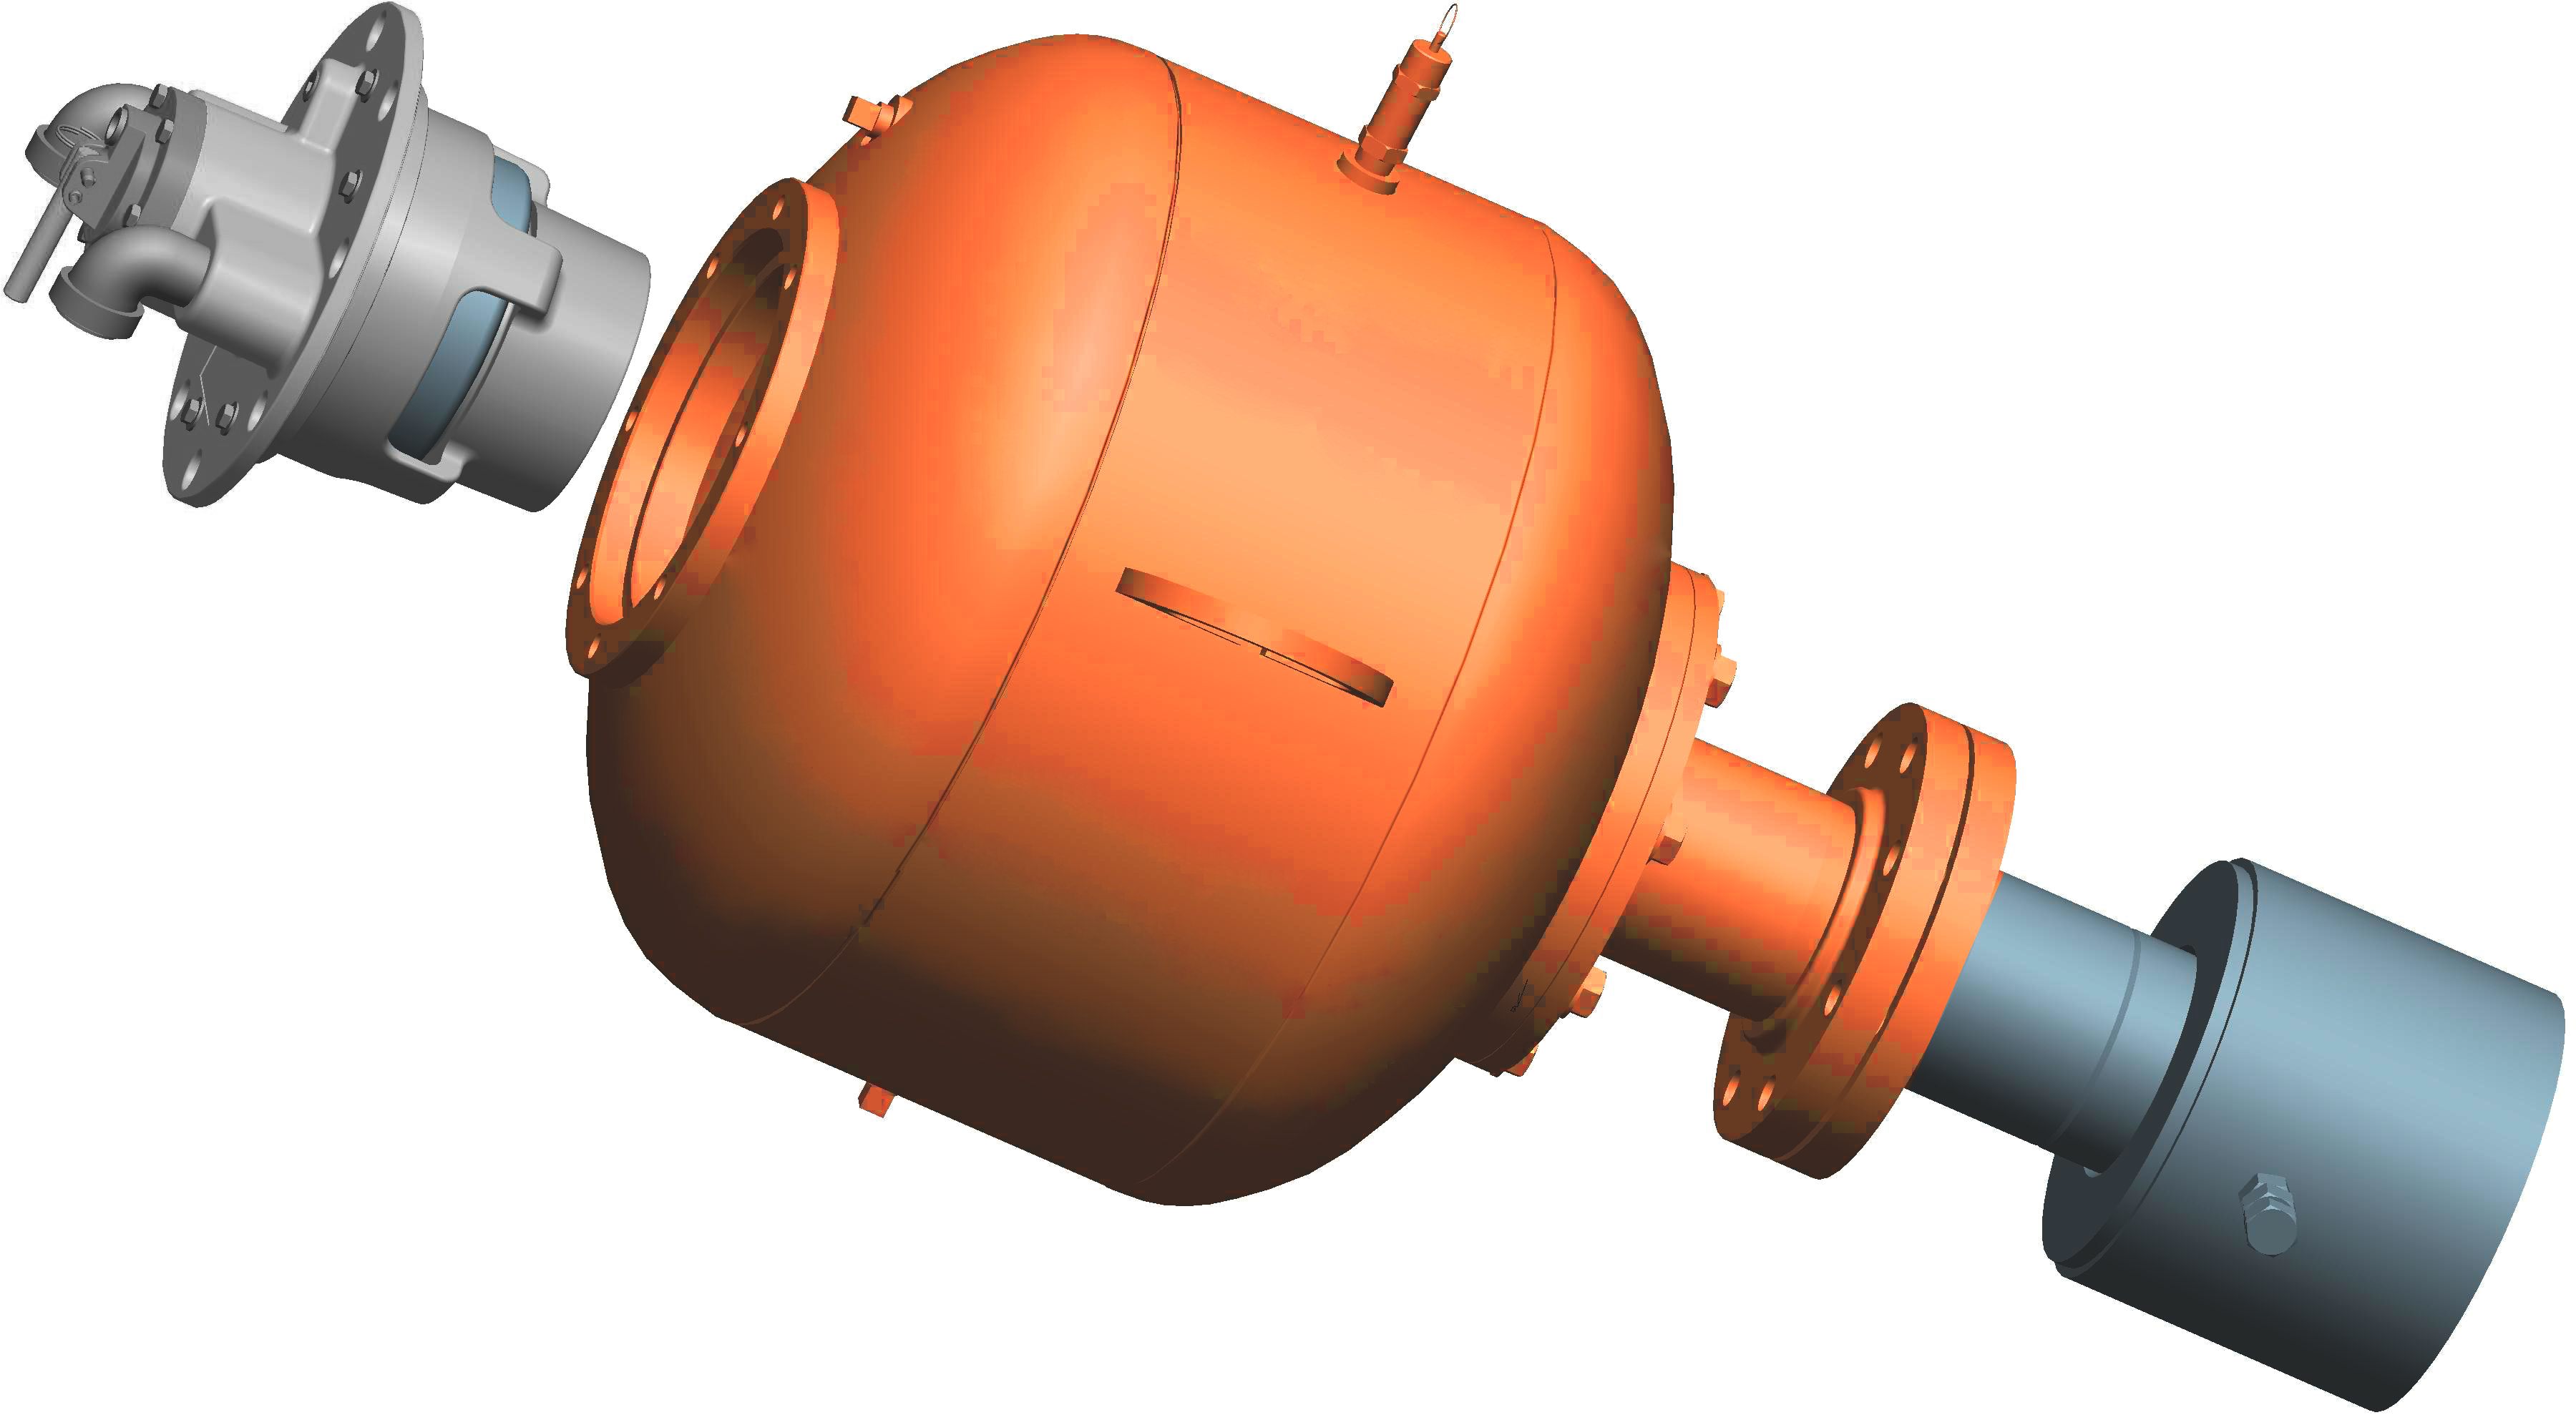 The central valve design delivers a direct air path, with maximum force output and low air consumption.